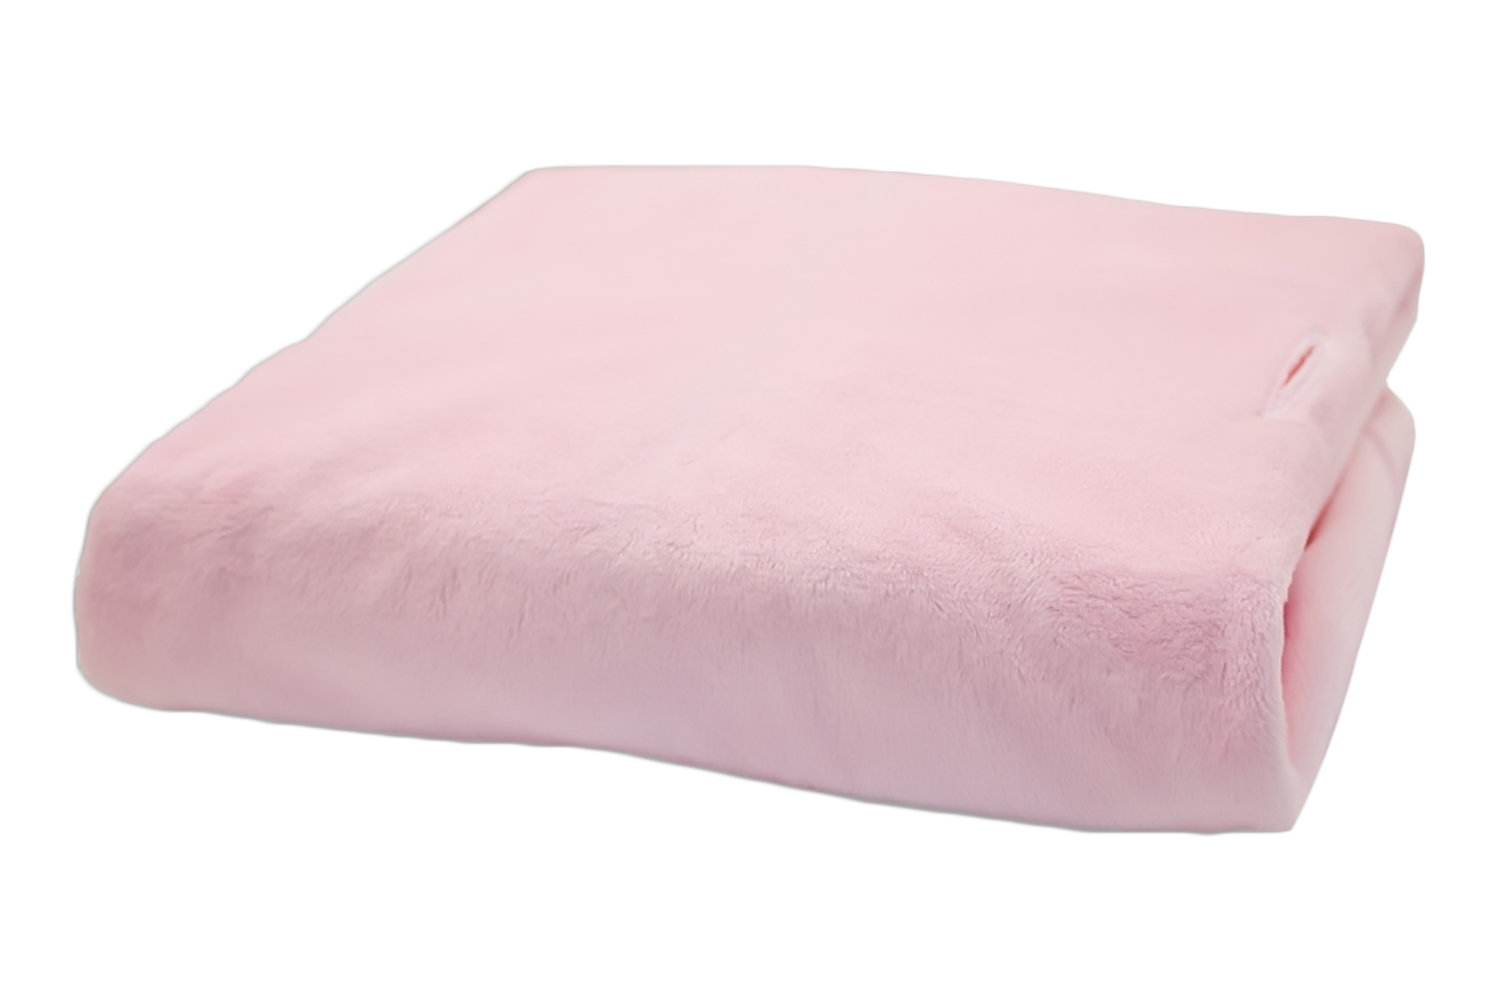 Rumble Tuff Kit Minky Contour Changing Pad Cover - Standard, Powder Pink